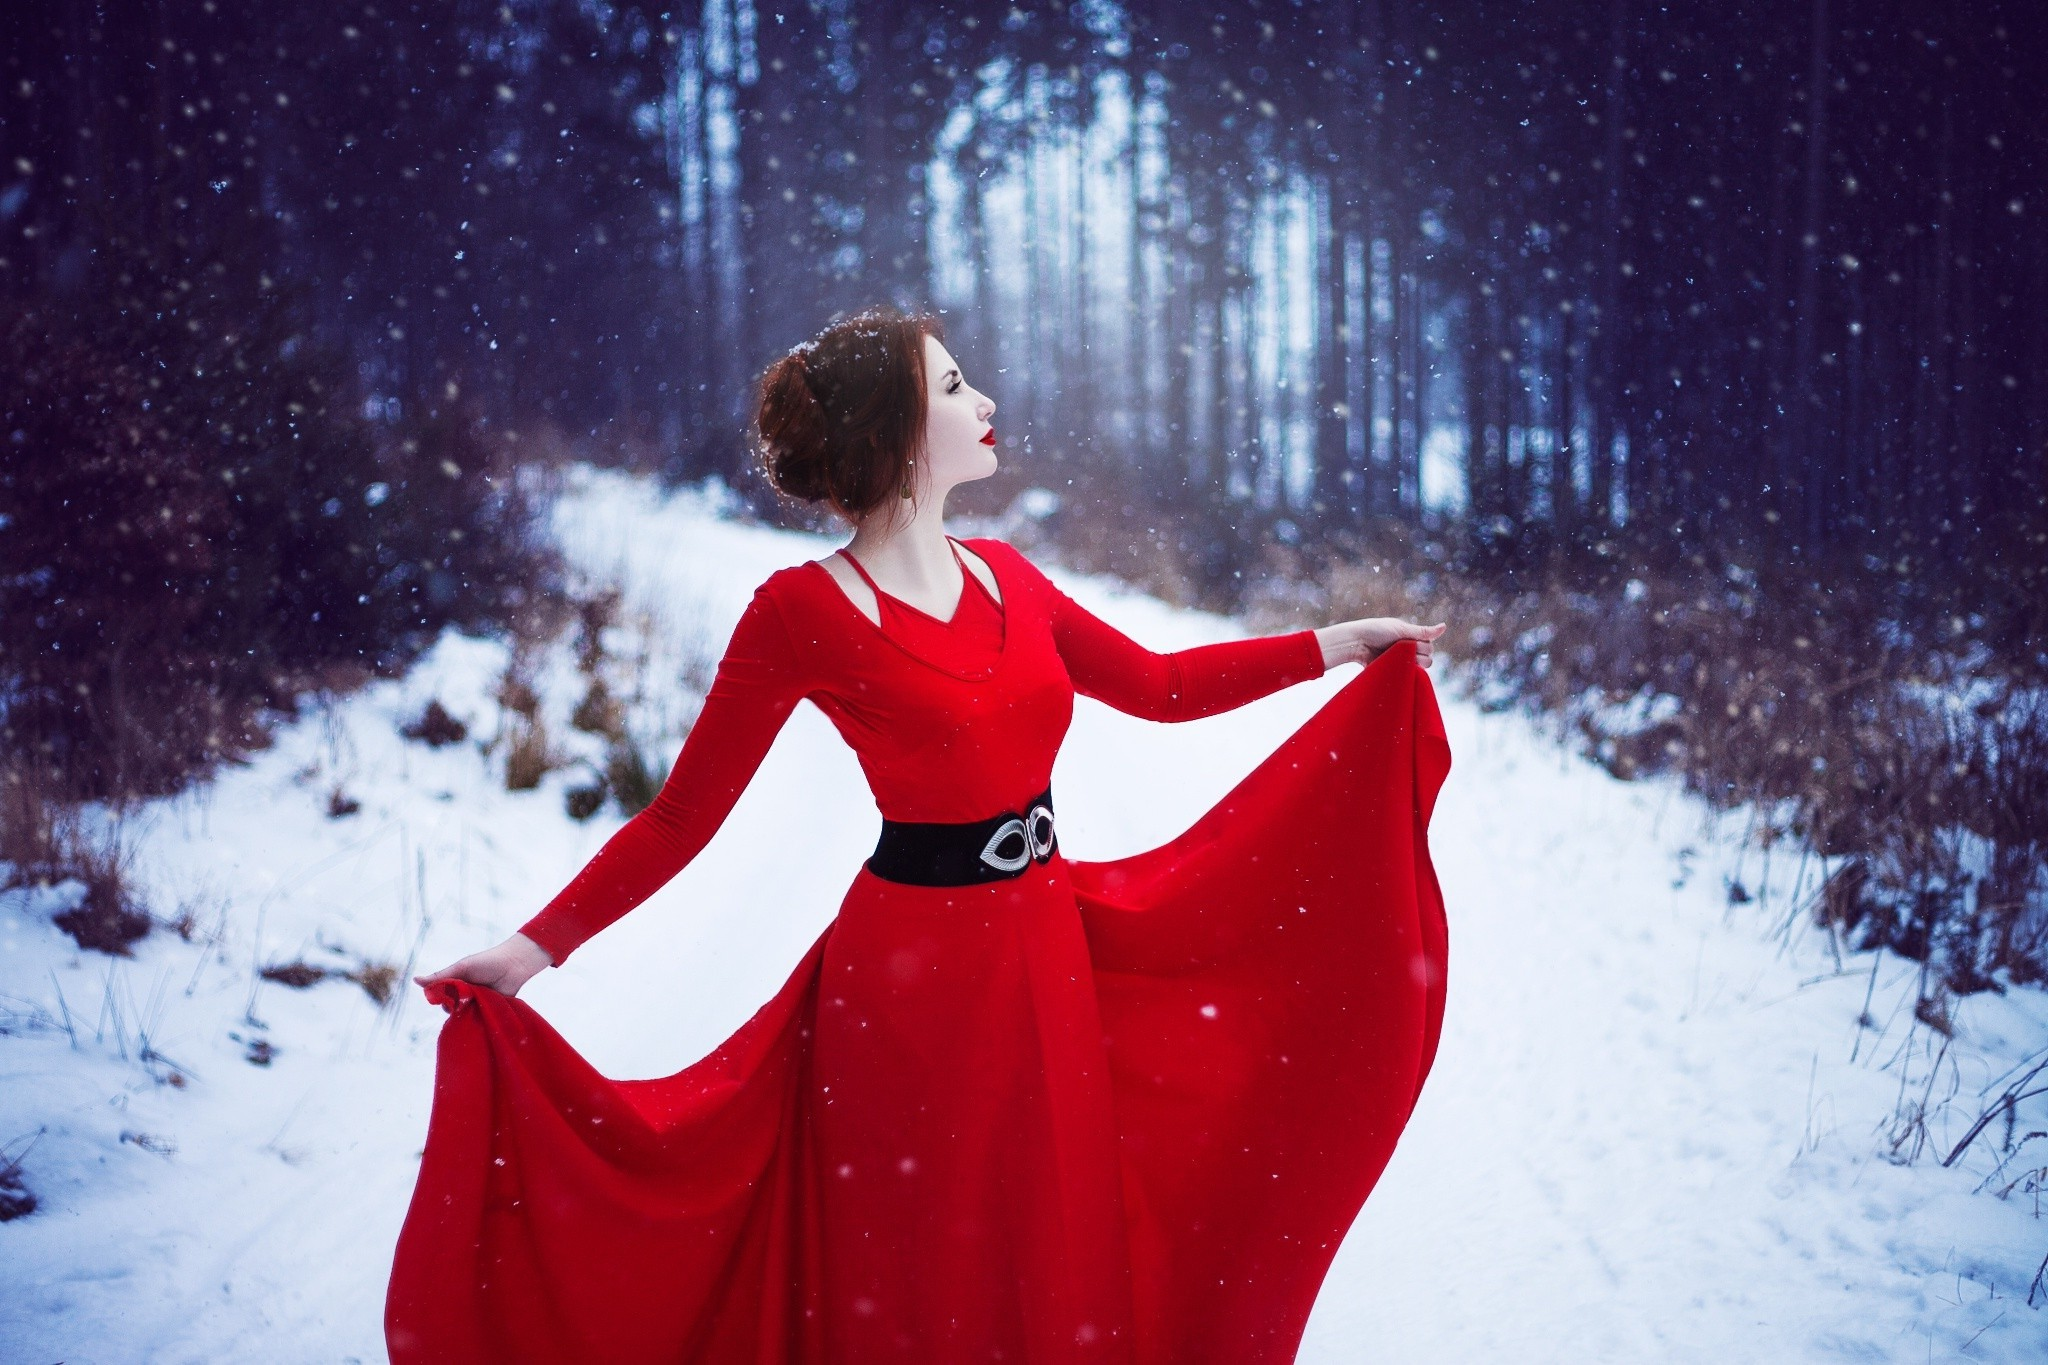 Red Dress Woman In Snow